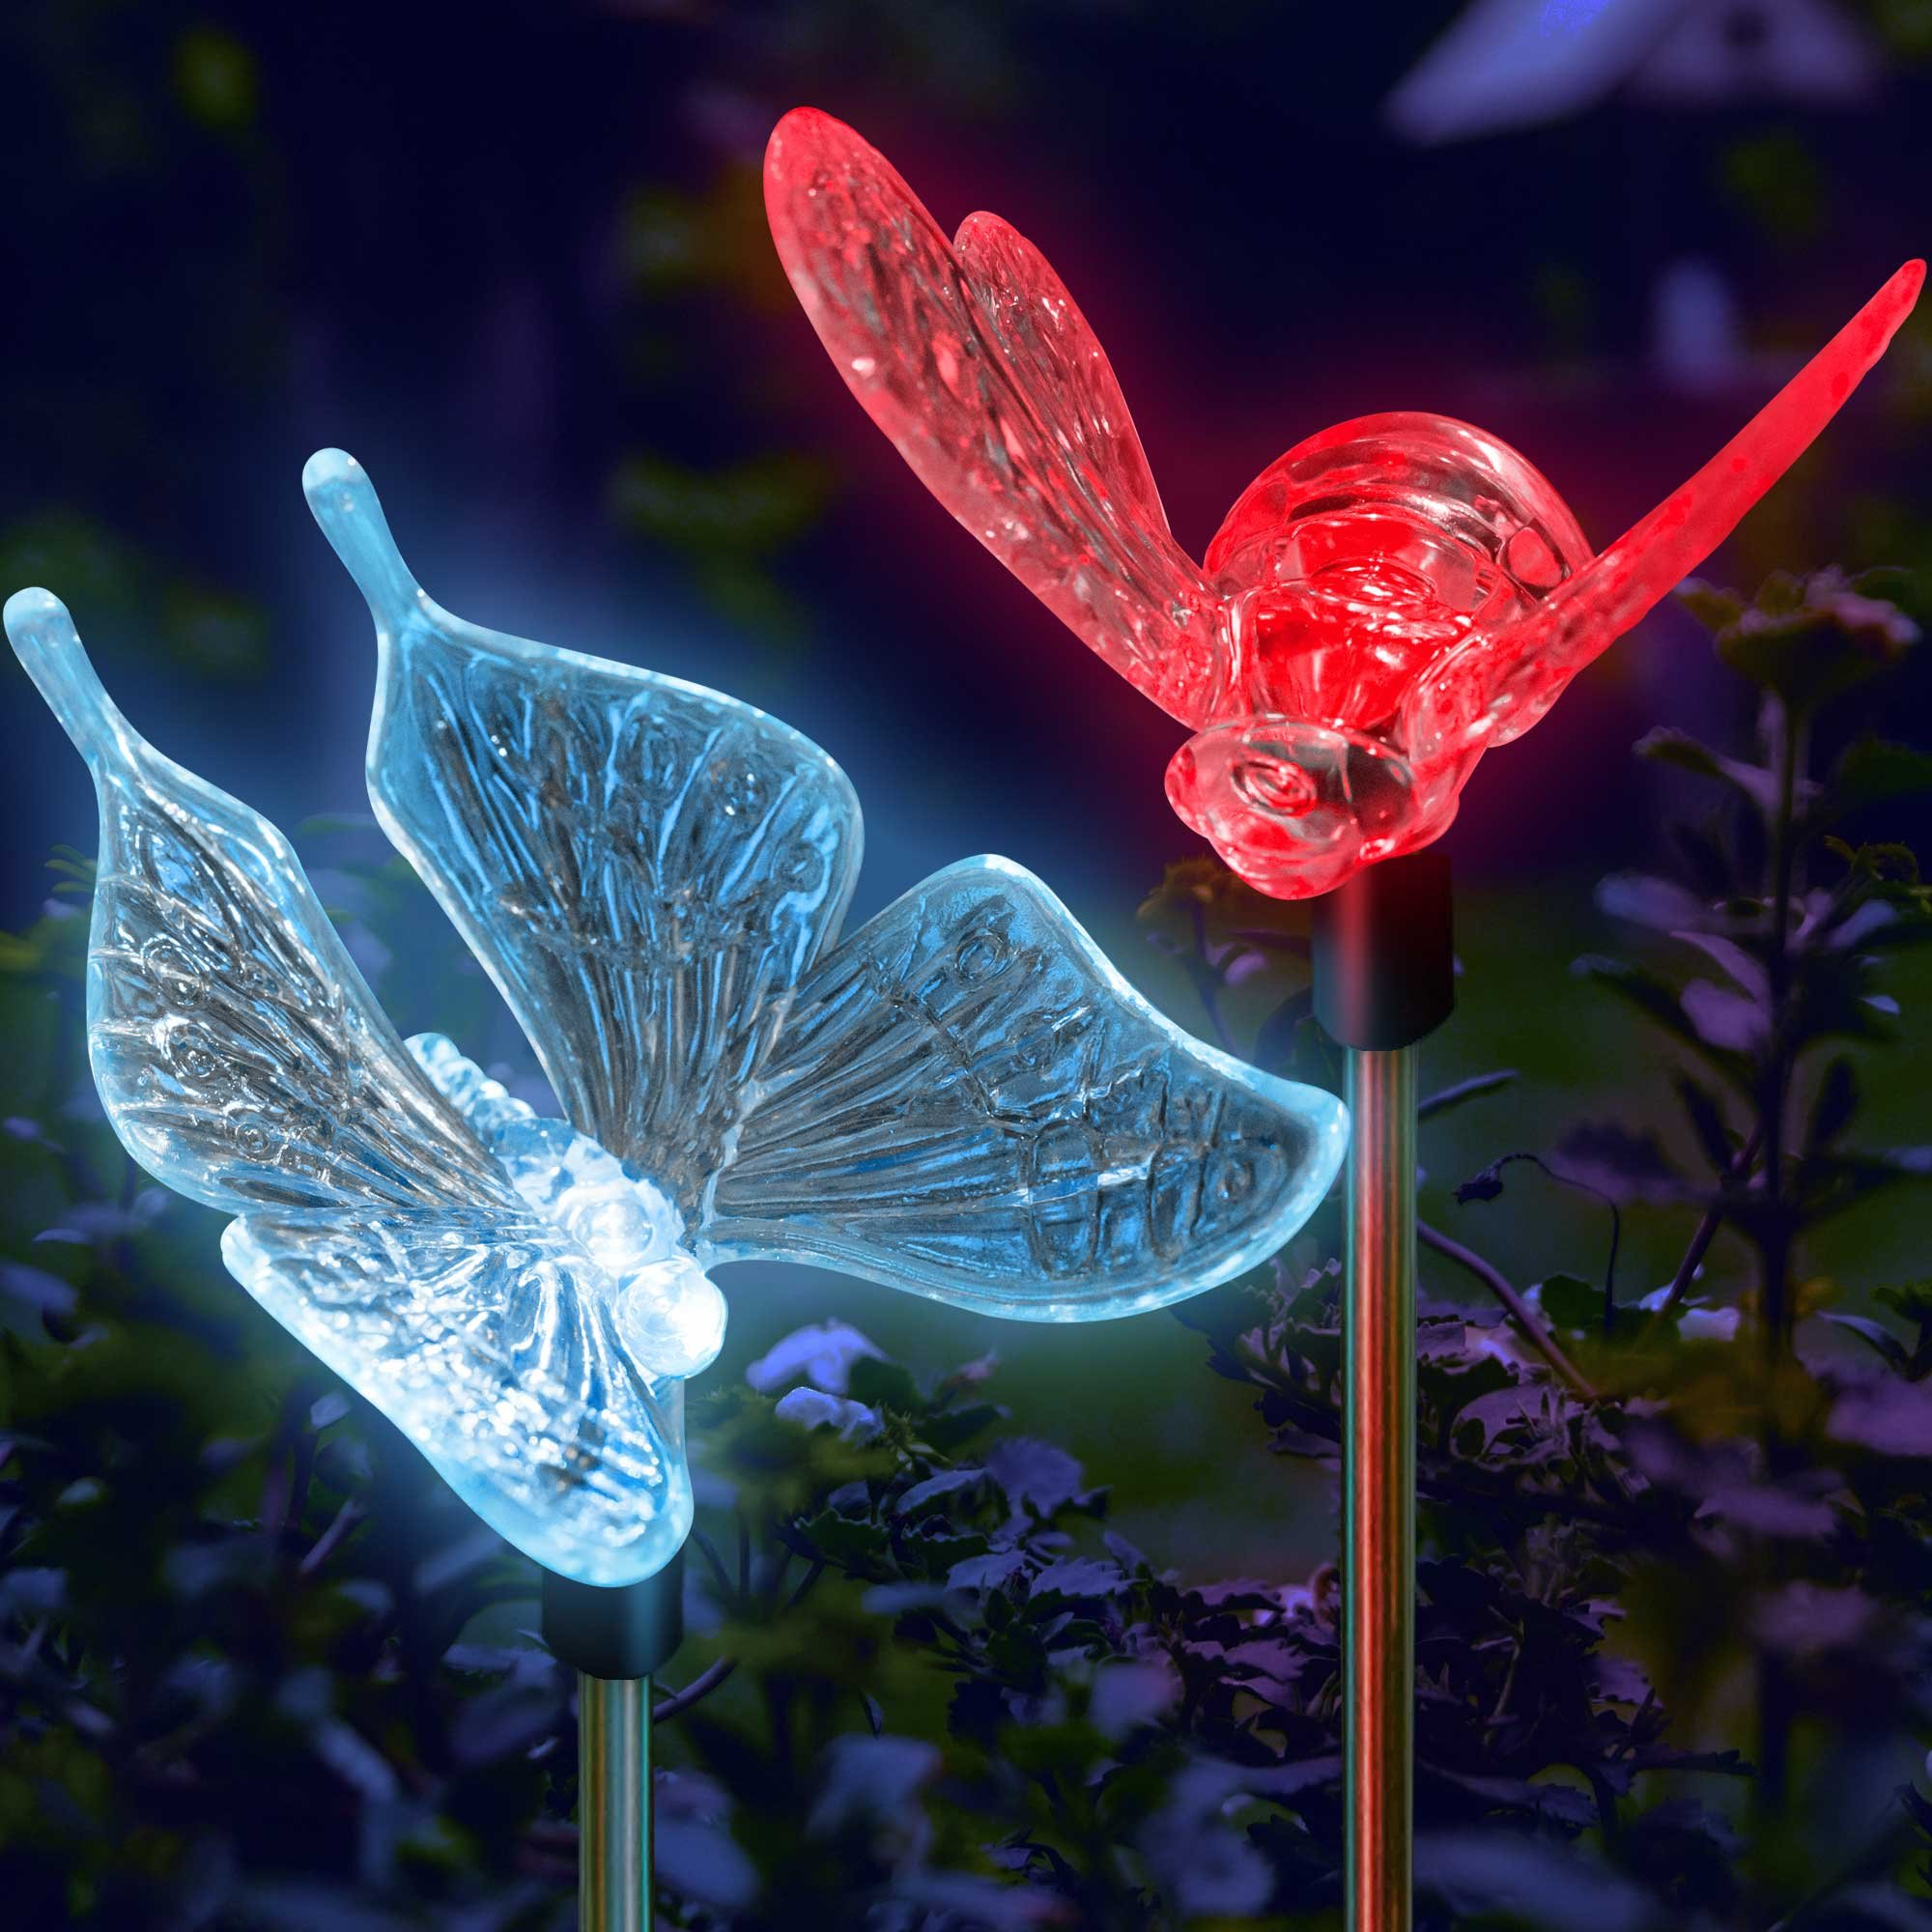 SolarDuke Solar Garden Outdoor Stake Lights Butterfly and Bumble Bee Garden Lighting Path Decoration Color Changing Patio Lawn Backyard Decor by SolarDuke (Image #2)